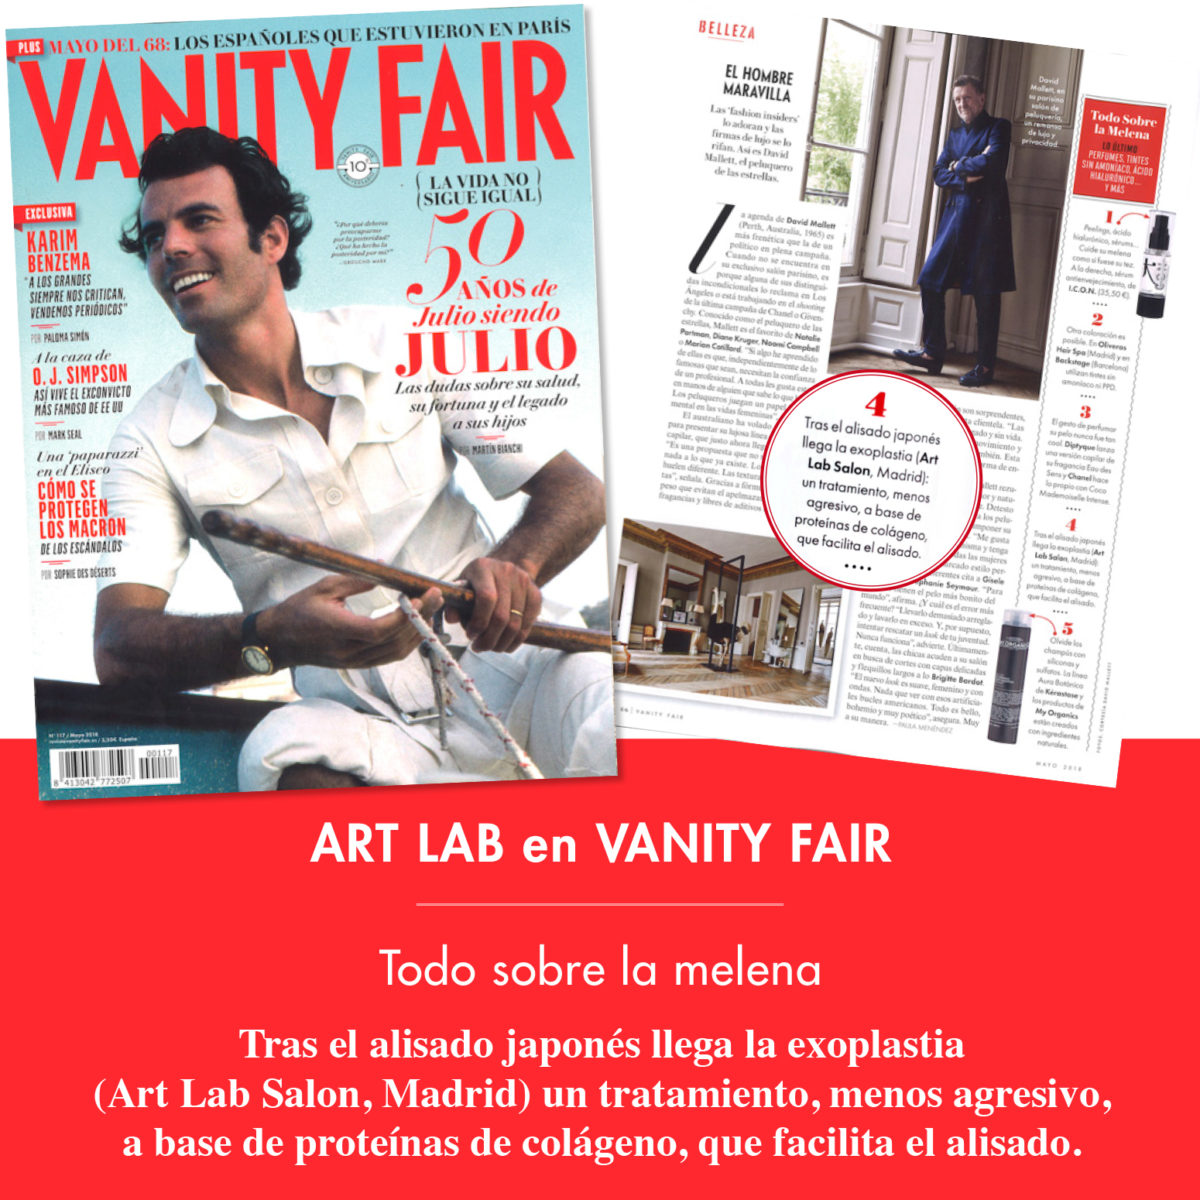 Art Lab en Vanity Fair